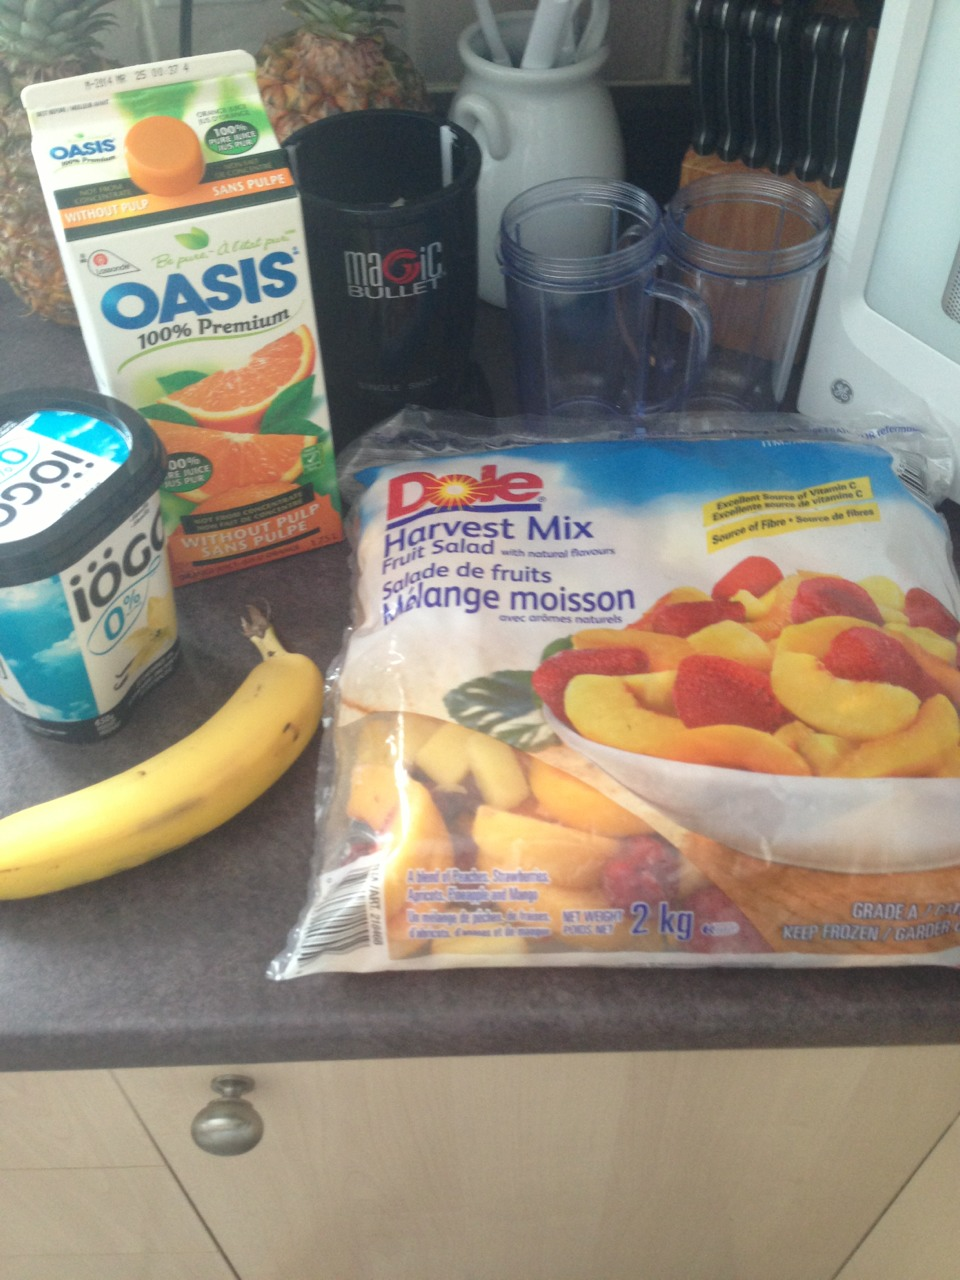 Ingredients  Frozen fruit( any kind works I'm using dole harvest mix) 1/2 a banana Any flavour of yogurt ( I'm using vanilla) Orange juice  And a blender the magic bullet works great!! It's easy to use and to clean!! Any blender will work though